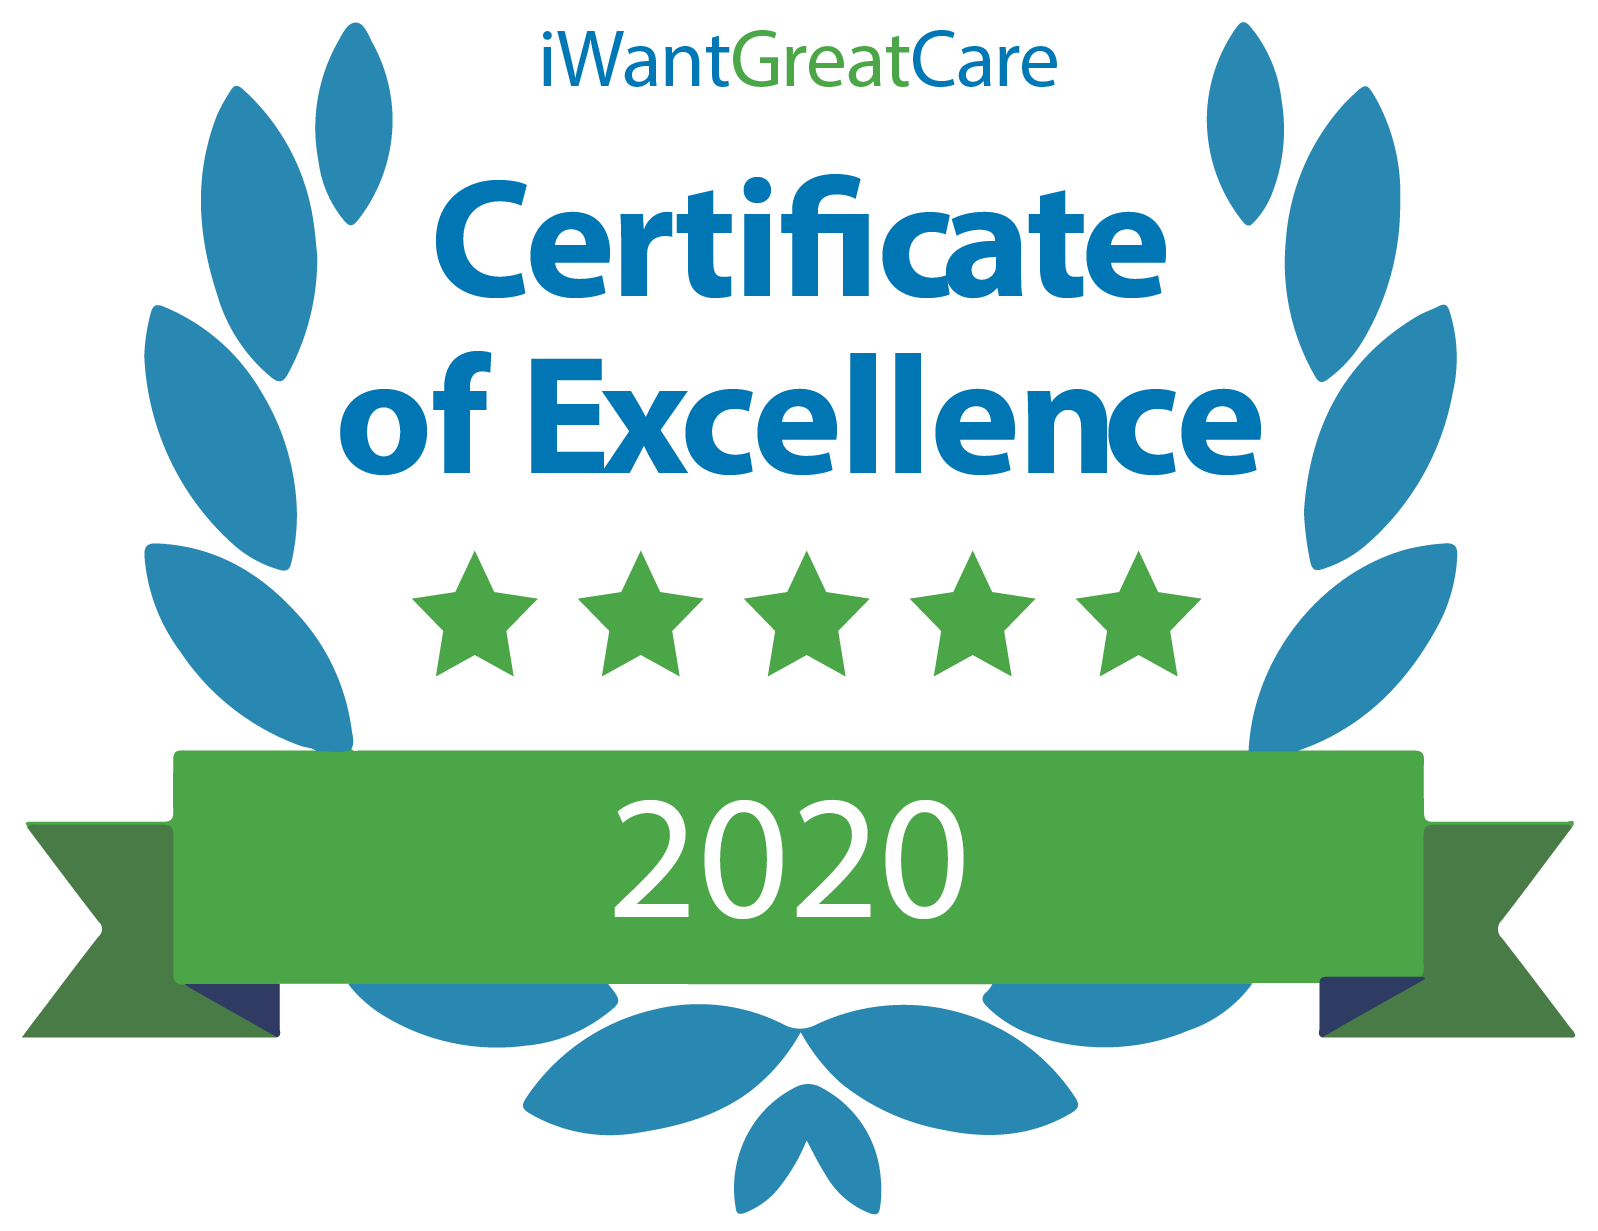 I want great care certificate of excellence 2020